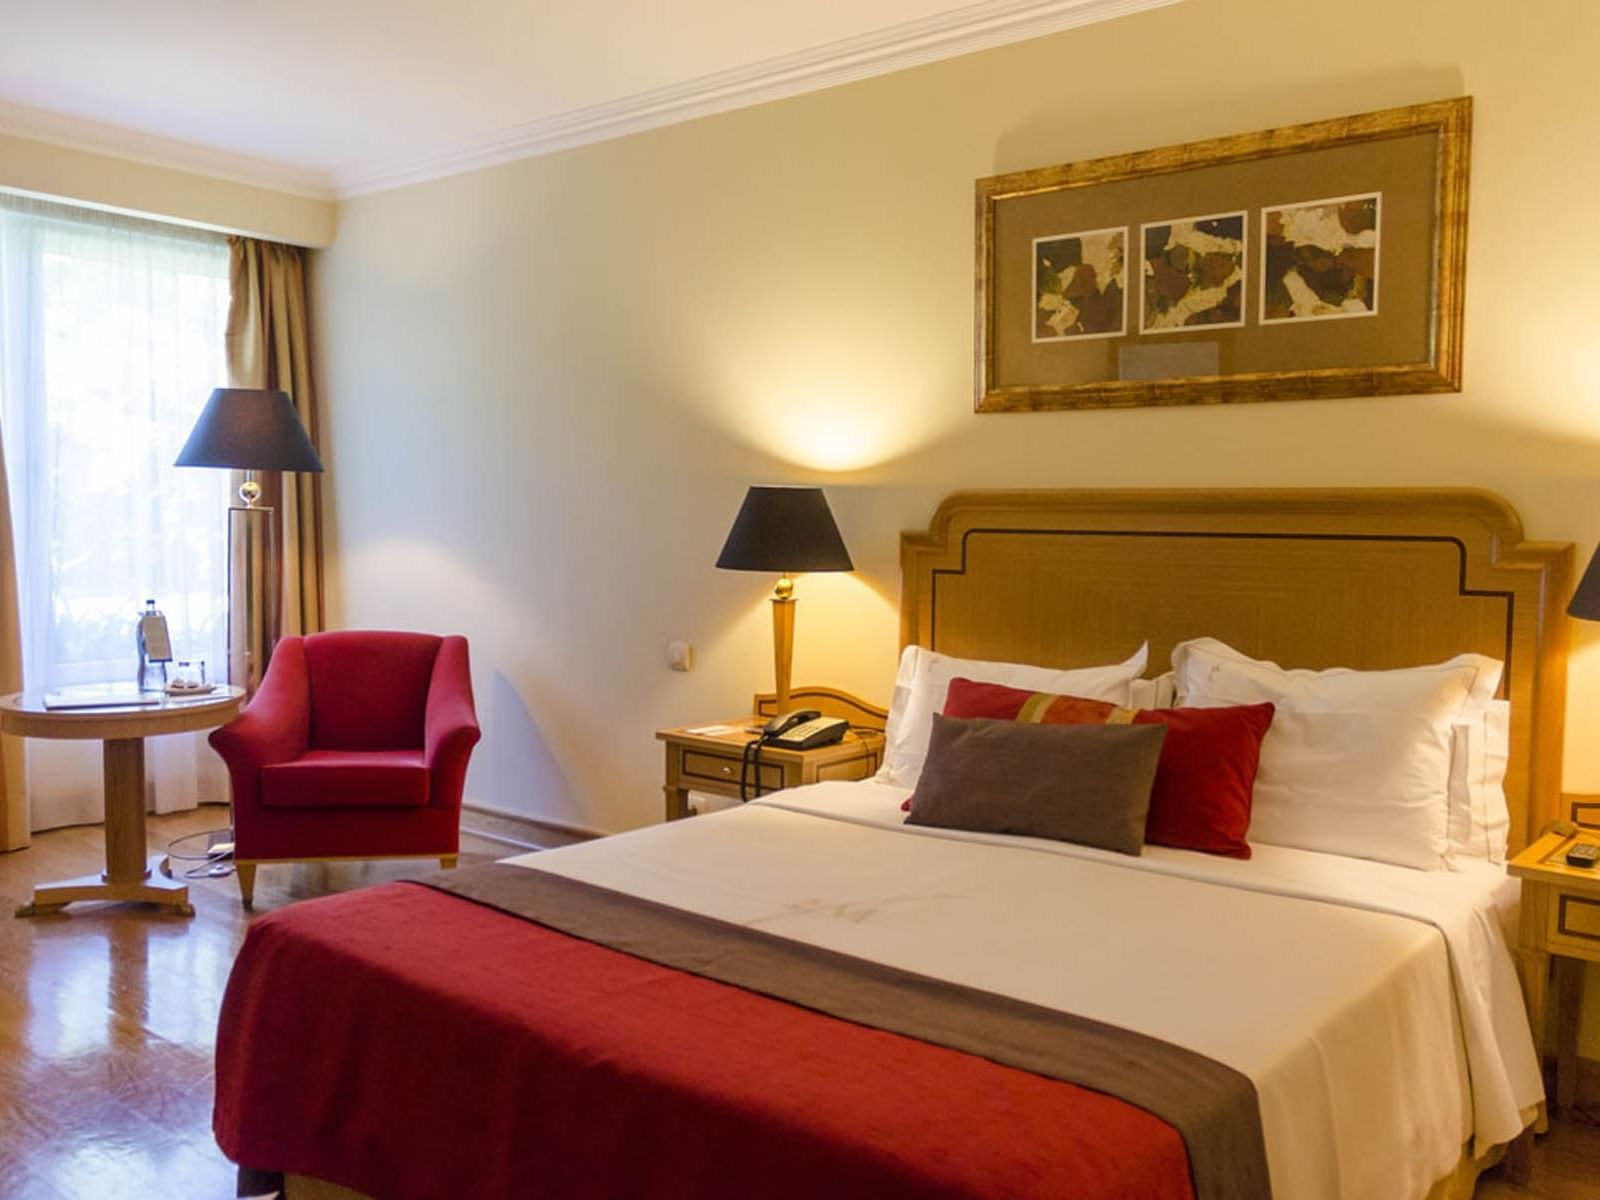 Standard Room with a single comfy  bed at Hotel Cascais Miragem